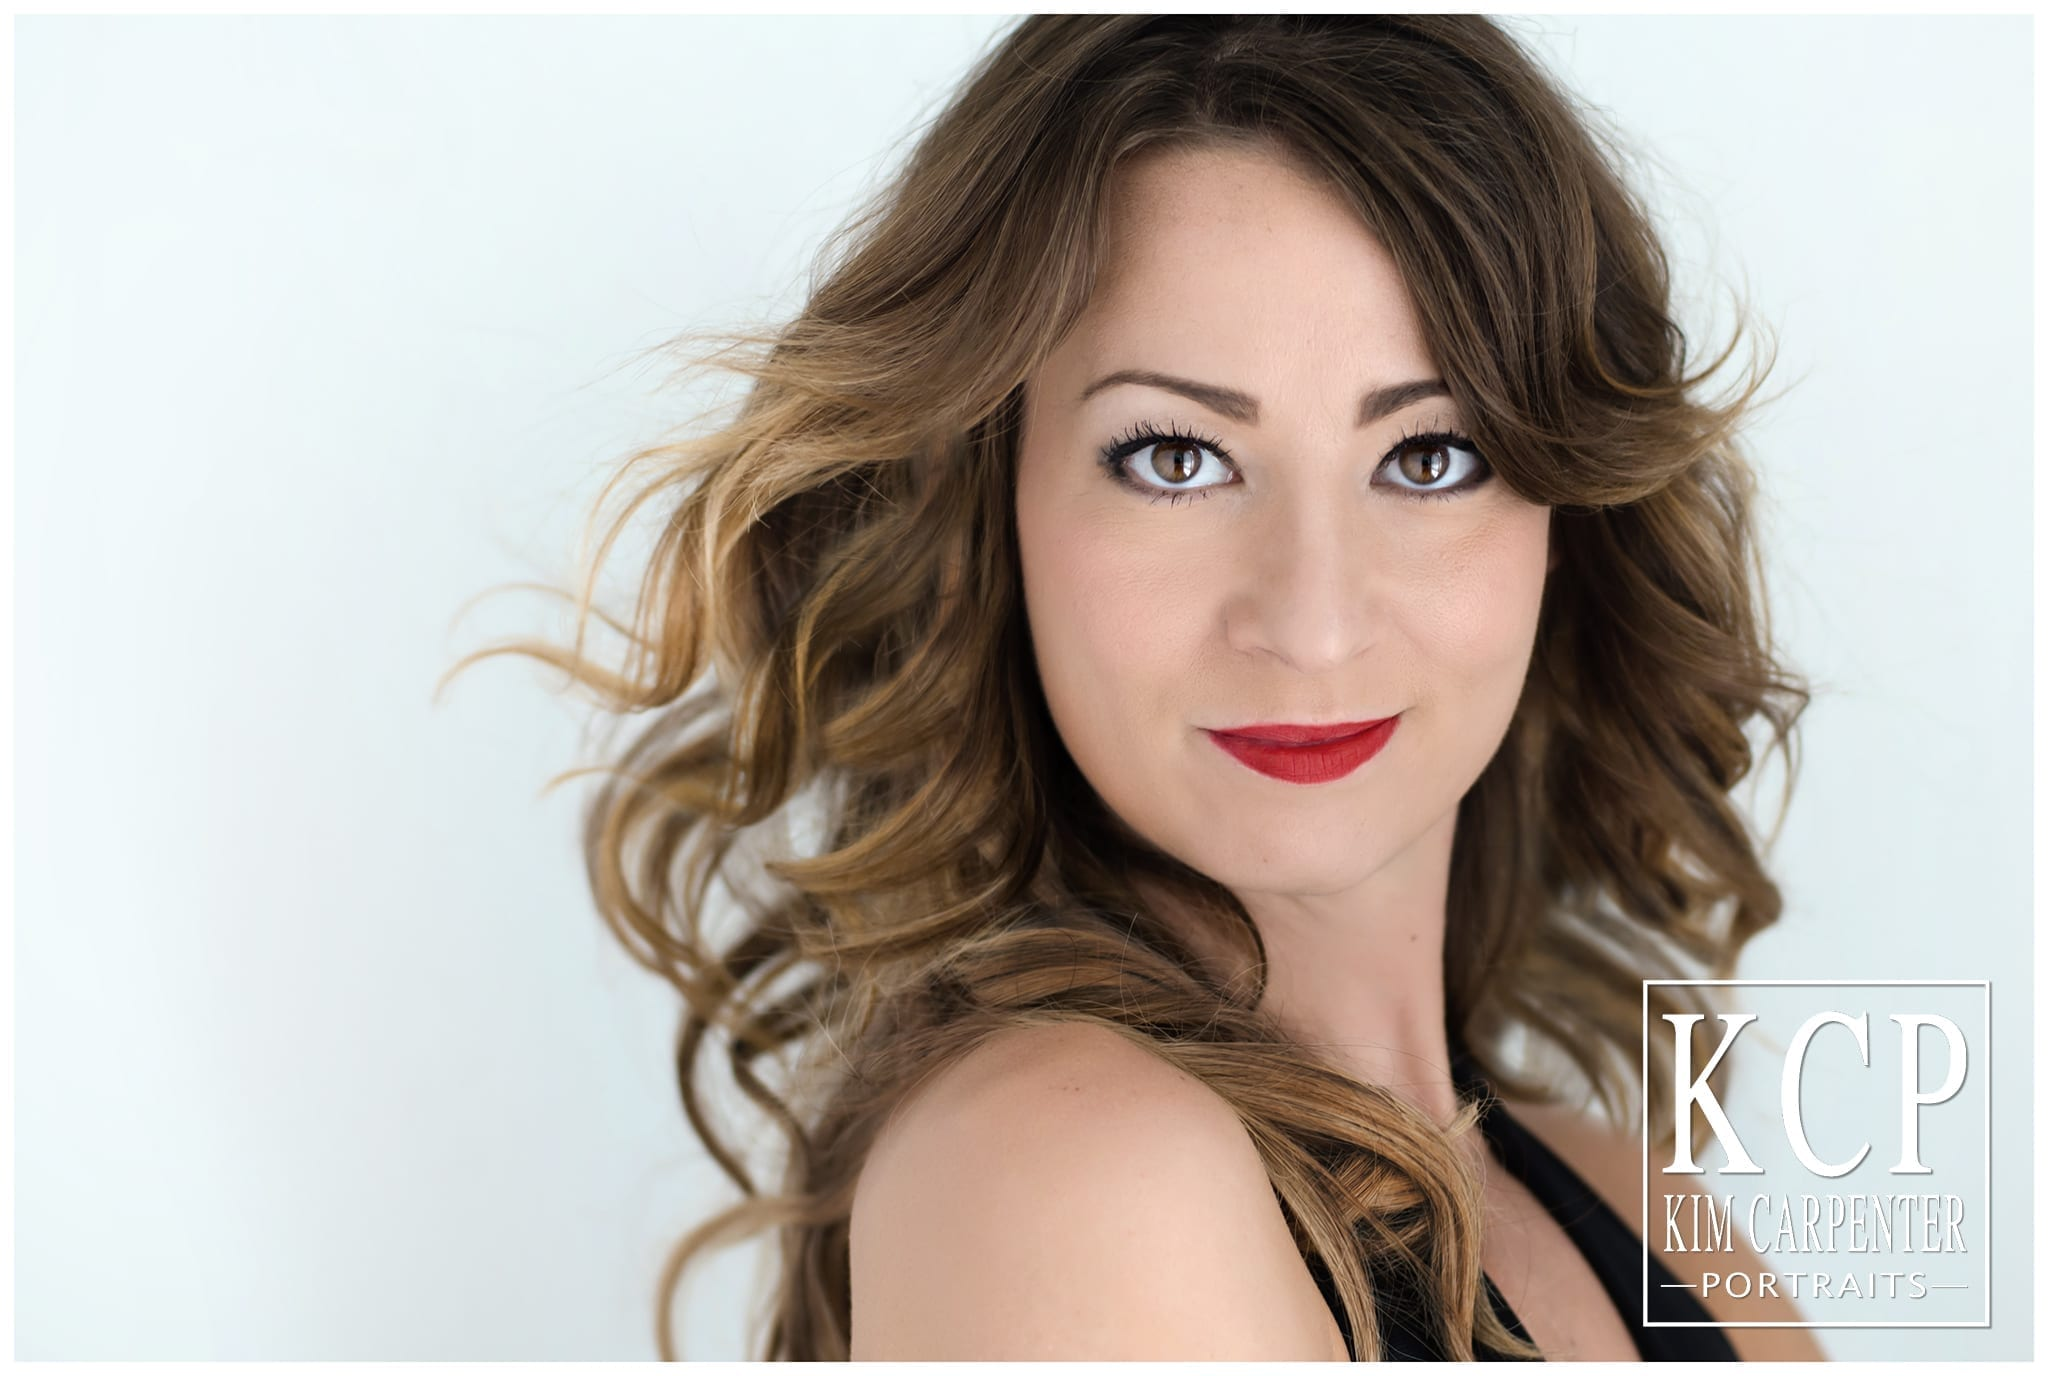 Gorgeous woman with bright red lips. Lakeland Photographer, professional headshots